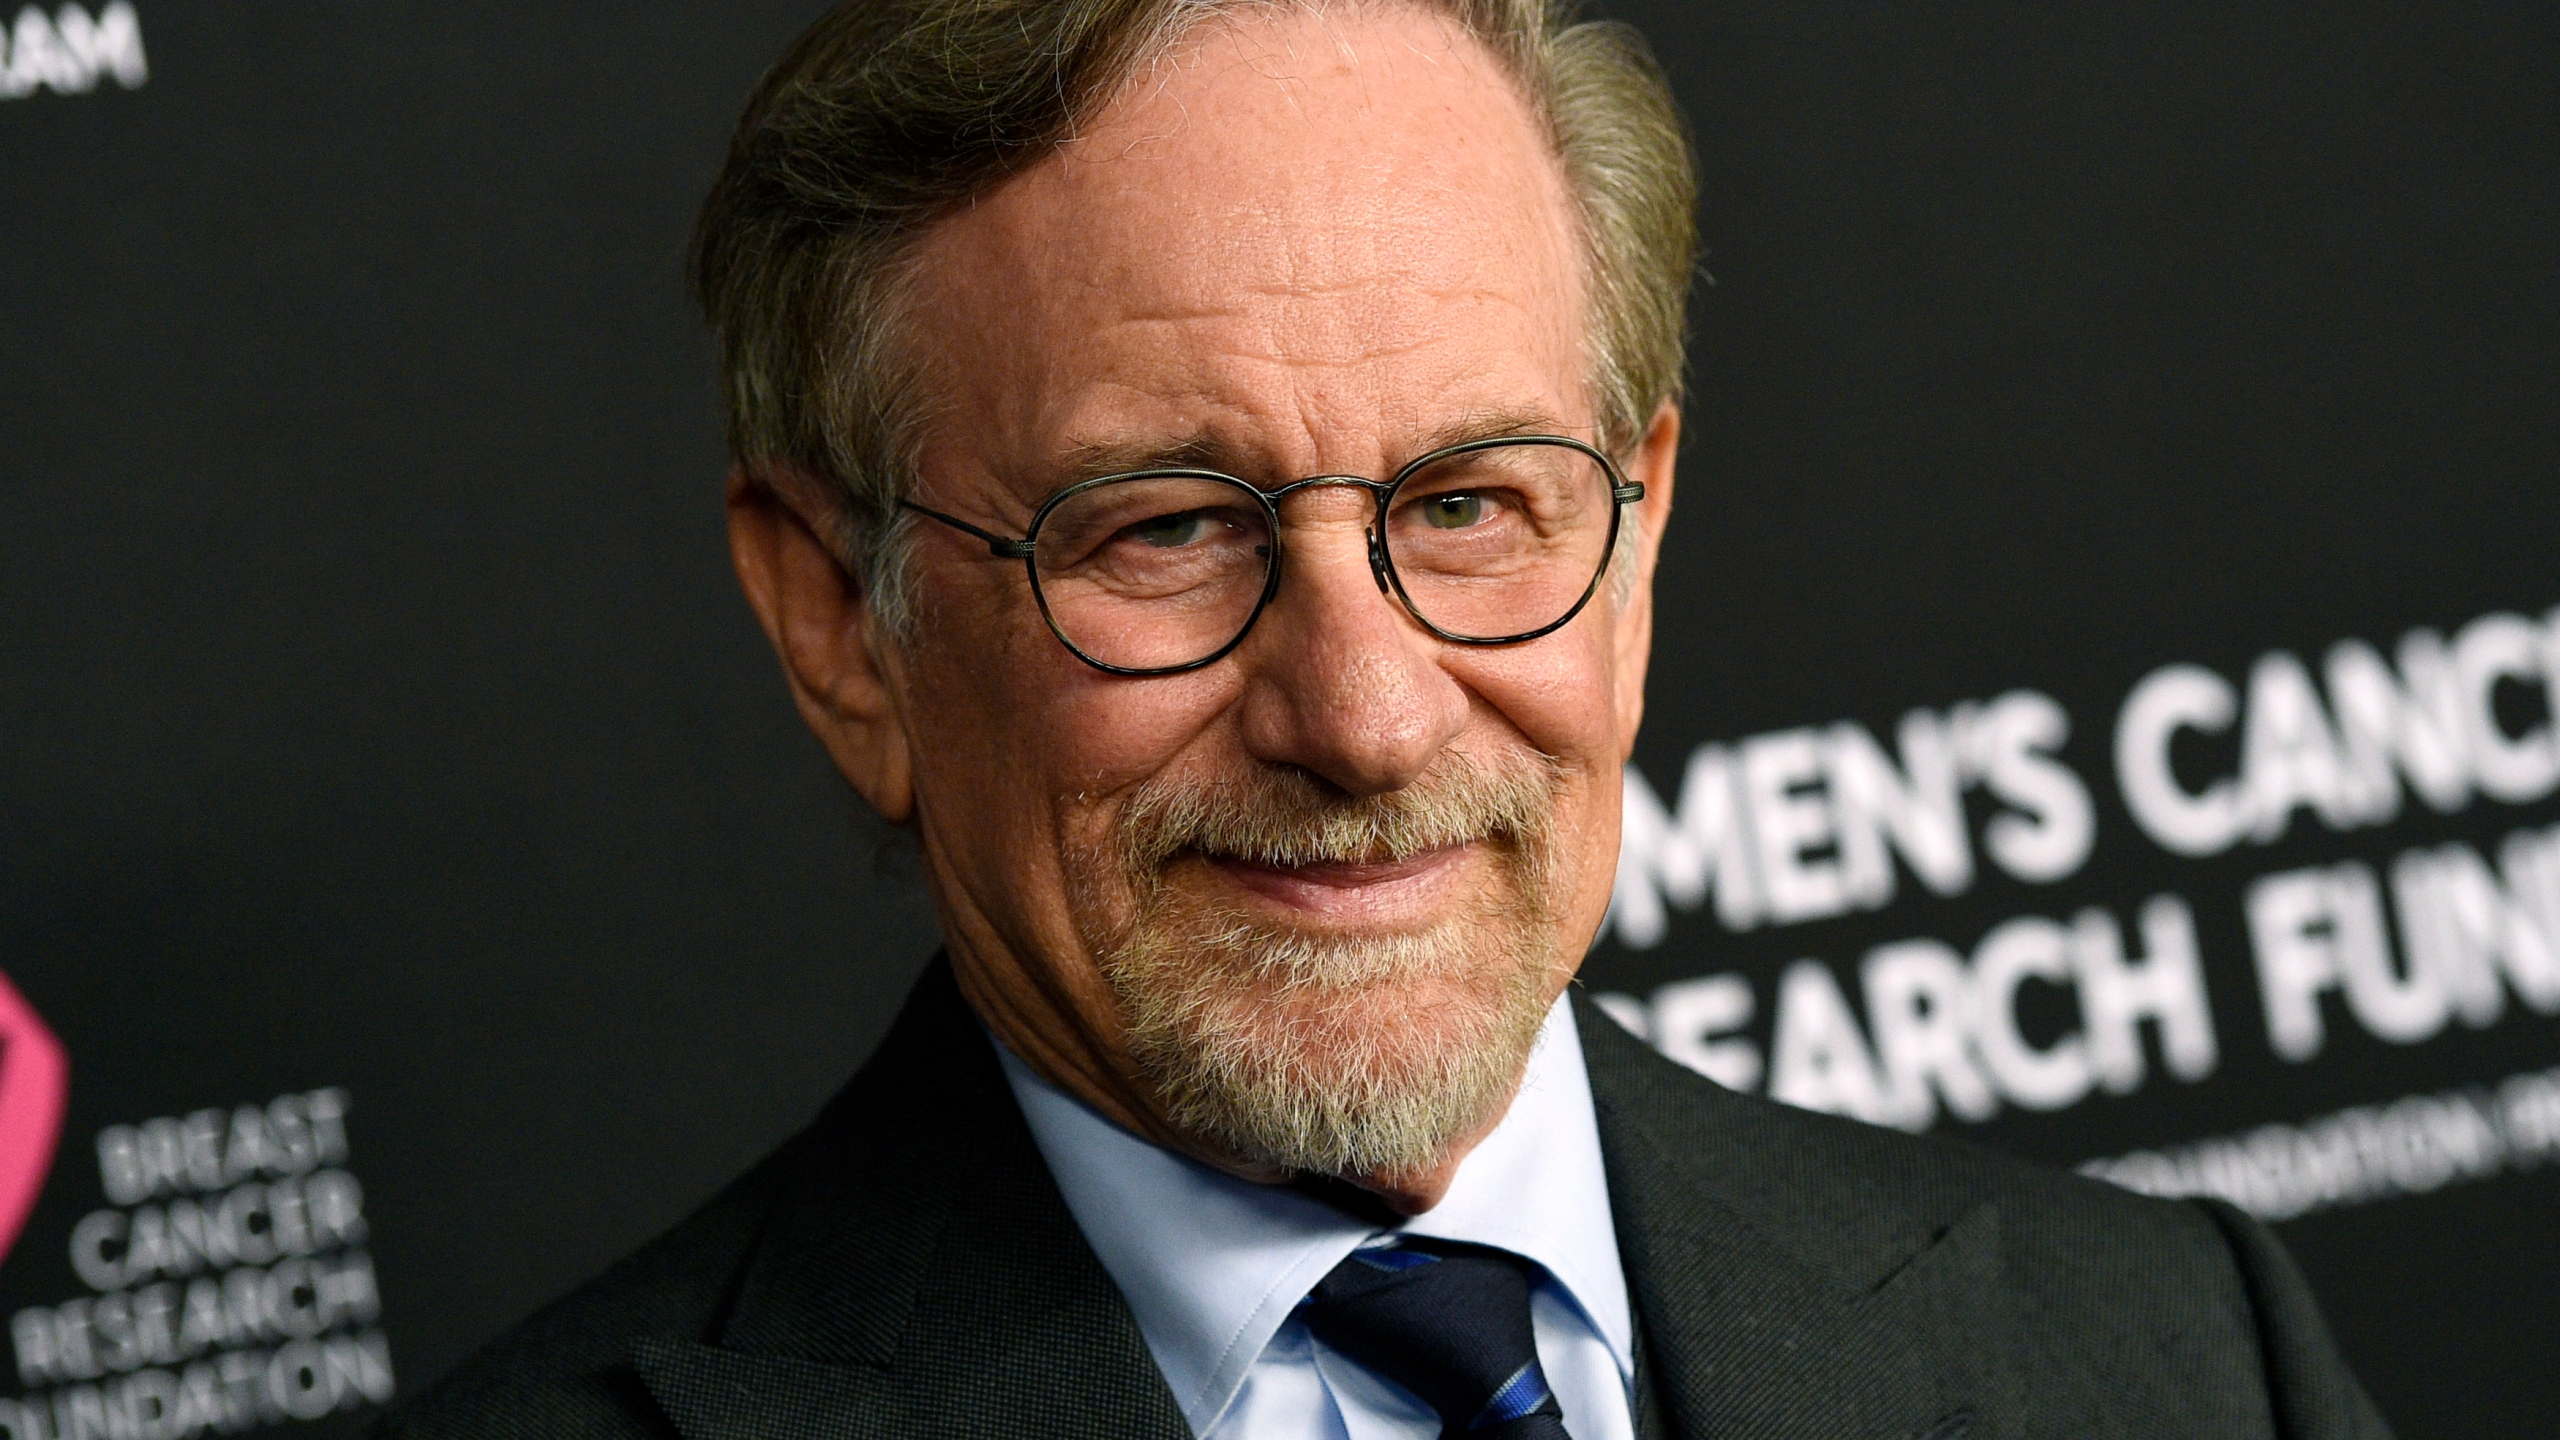 """Filmmaker Steven Spielberg poses at the 2019 """"An Unforgettable Evening"""" benefiting the Women's Cancer Research Fund in Beverly Hills on Feb. 28, 2019. (Chris Pizzello/Invision/Associated Press)"""